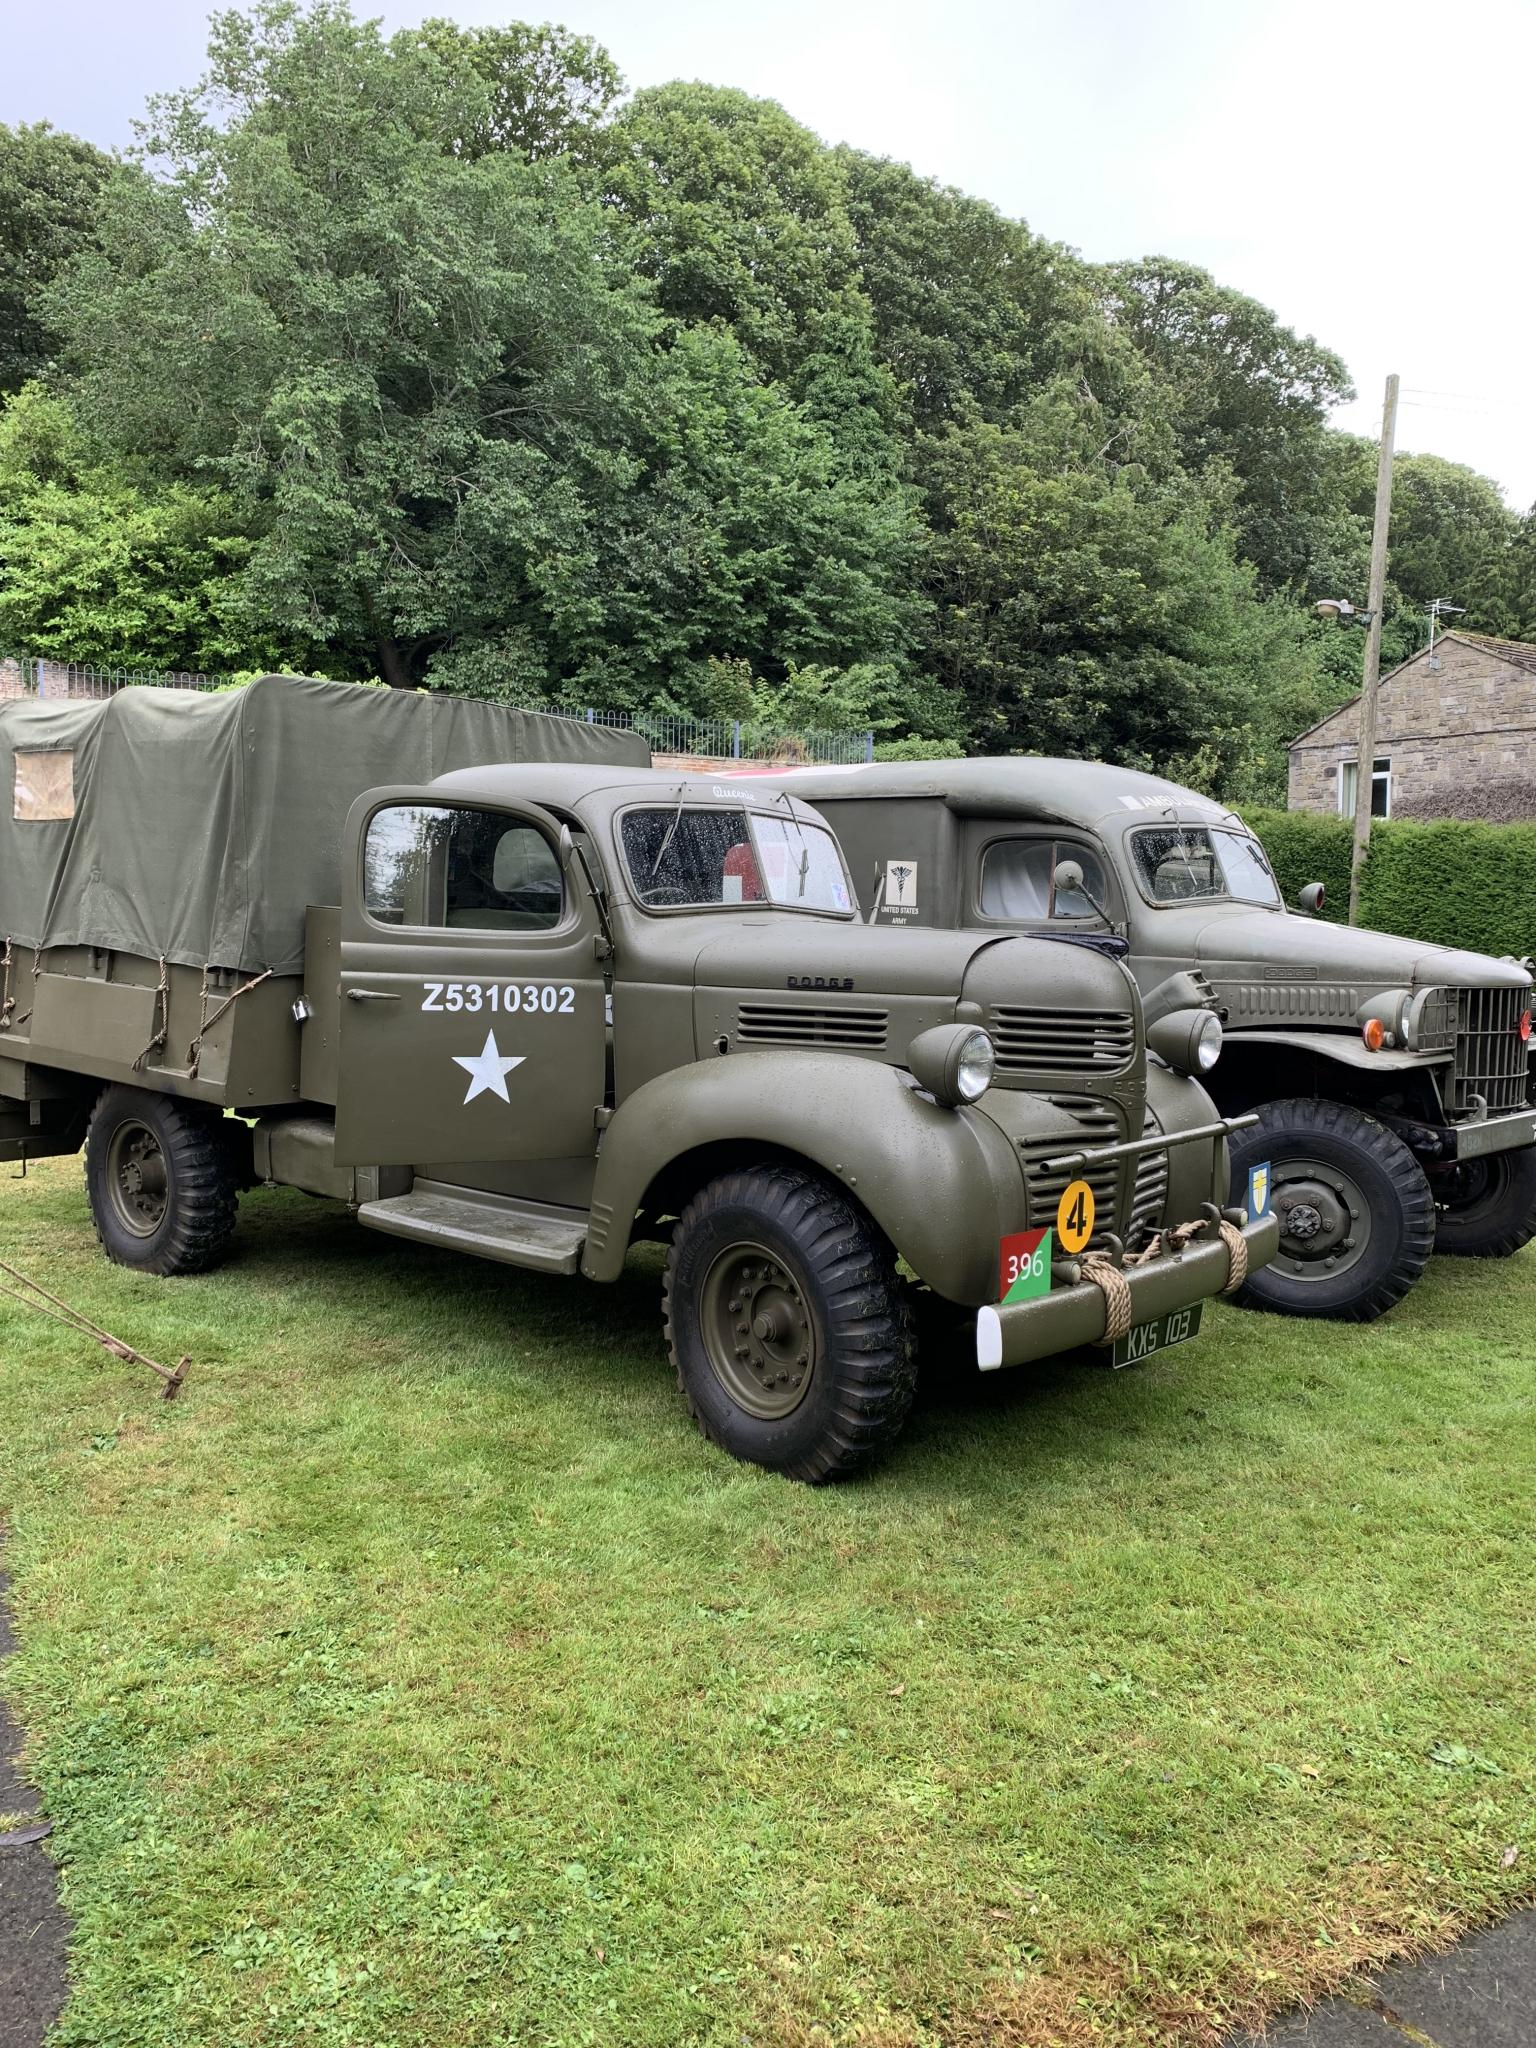 Two of the re-enactors vehicles at the Home Front Vintage Fair 2019